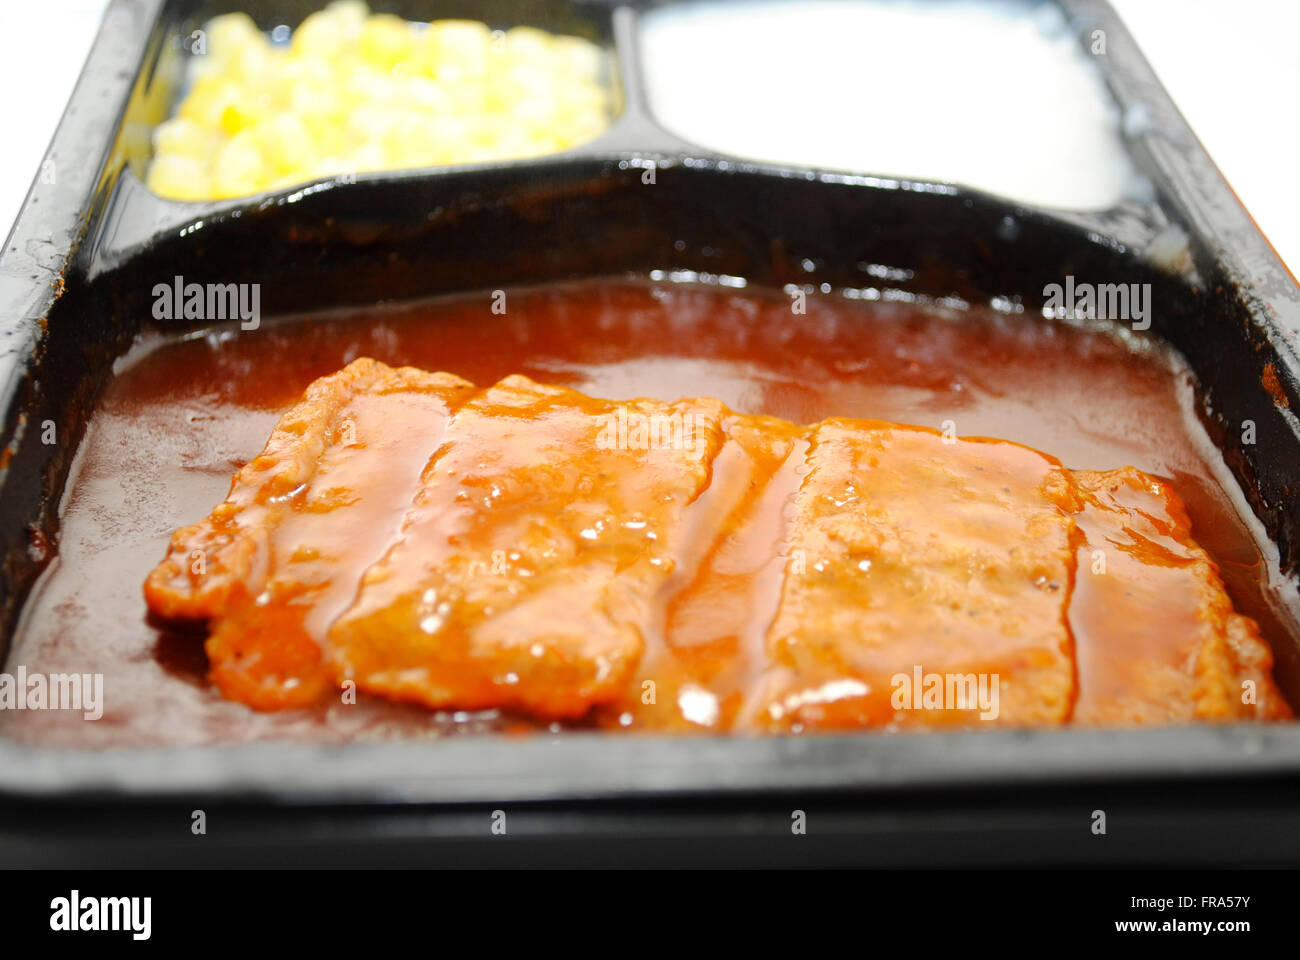 TV Dinner with Focus on a BBQ Boneless Pork Patty Stock Photo